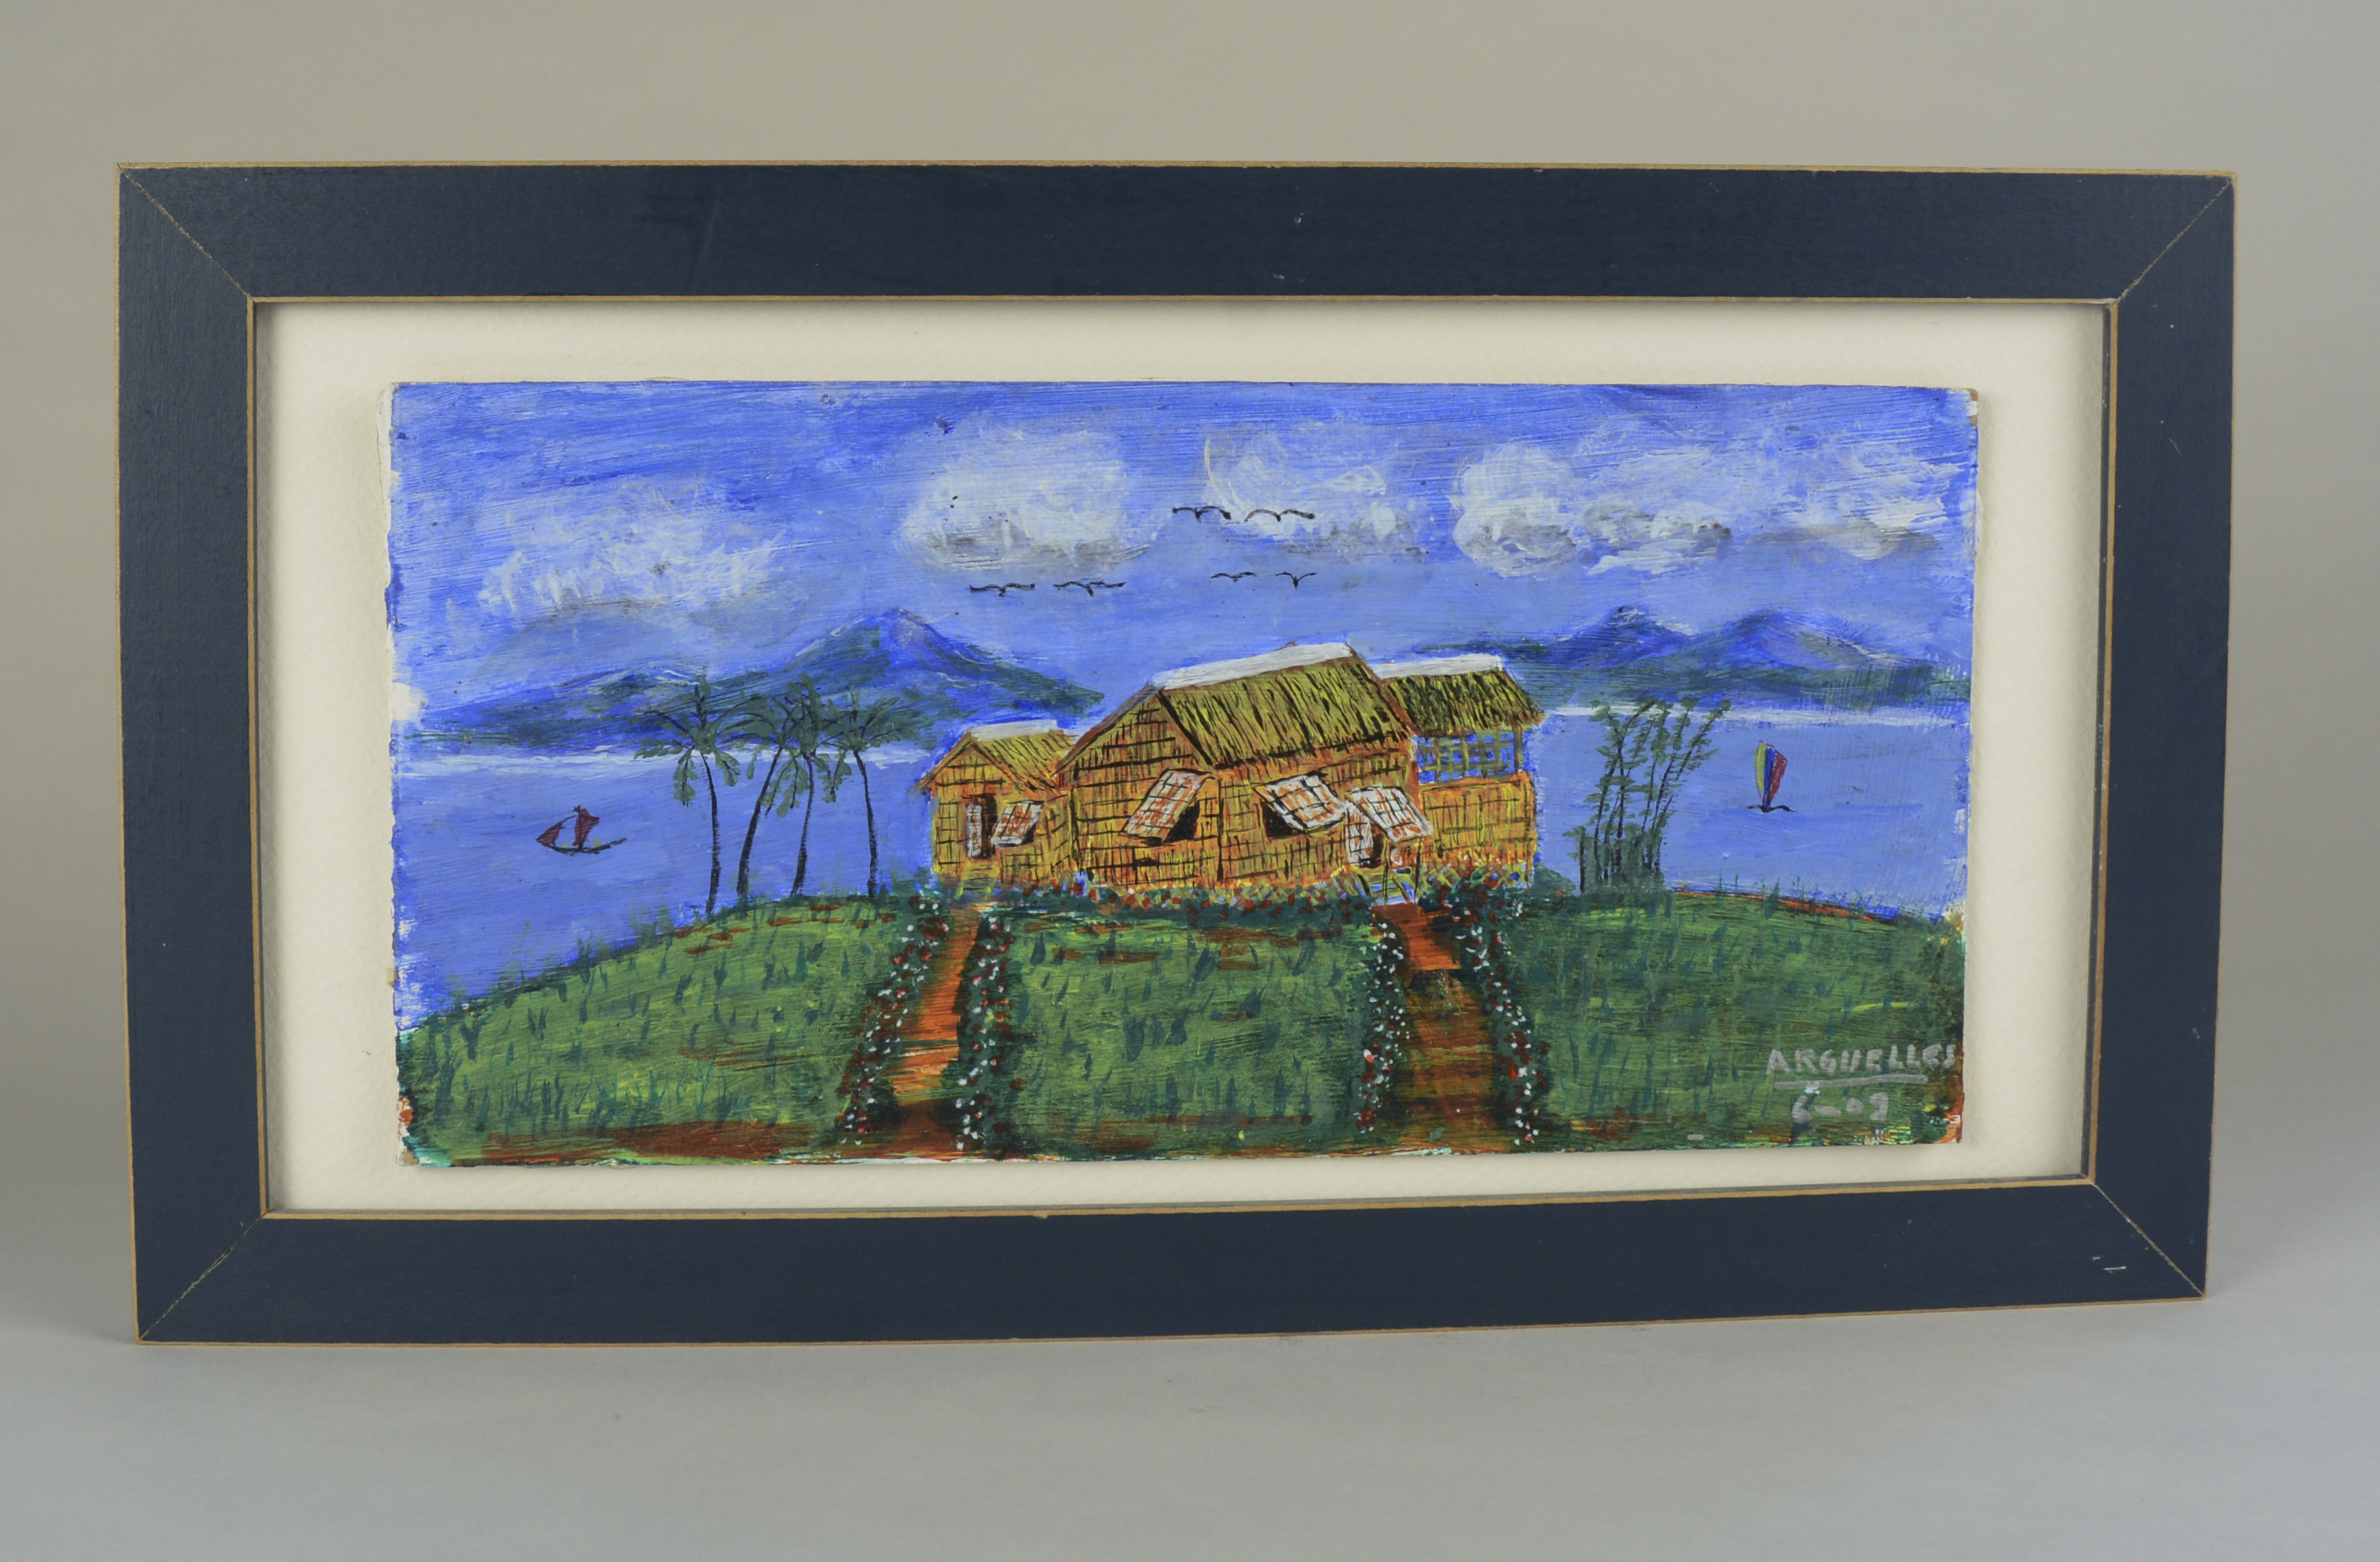 "Painting owned by Magdalena Arguelles.The painting was made in 2009 in Chicago. Arguelles said her father Jose made it from memory at the age of 78. He was not a trained artist. Arguelles' father gave her the painting as a gift. The painting depicts an island off of Iloilo called Nasidman Island, which is part of Ajuy, Iloilo. It is a private homesteaded island. The painting is signed ""Arguelles 2009"". Arguelles said the painting is important because it is where she comes from.   Any views, findings, conclusions, or recommendations expressed in this story do not necessarily represent those of the National Endowment for the Humanities. [Copyright] Field Museum of Natural History - CC BY-NC"